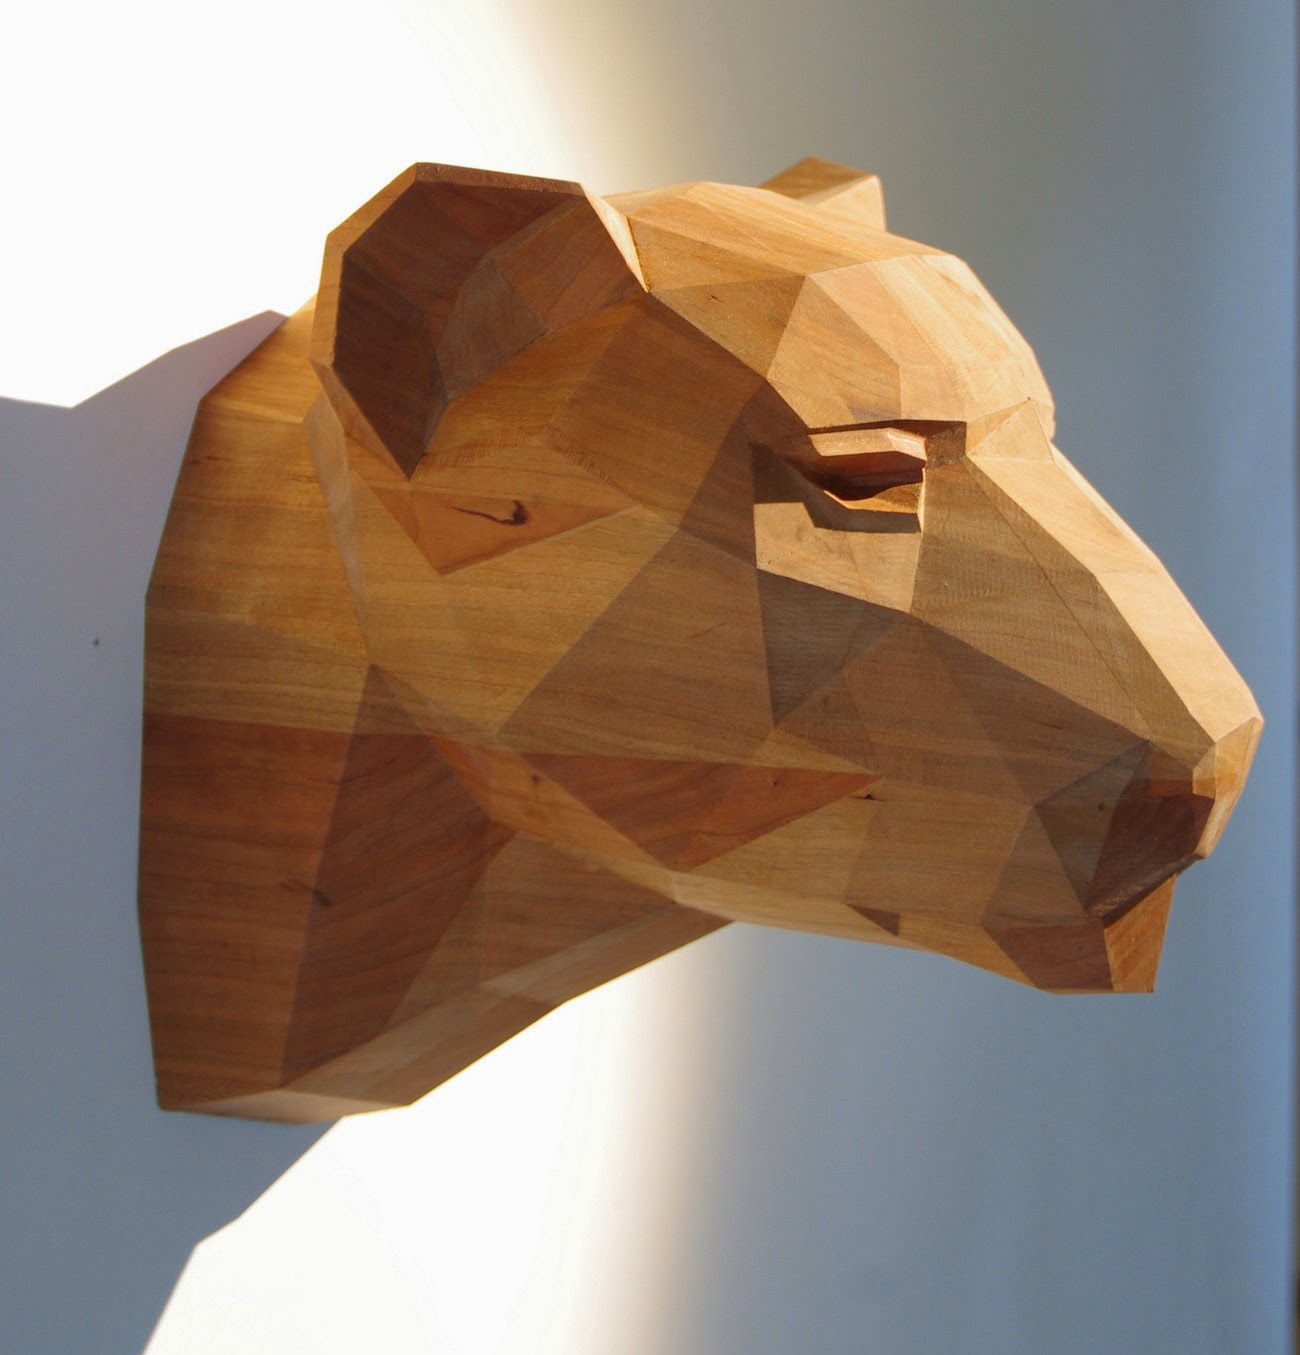 Okokno handmade paper sculptures by paperwolf - Video de sculpture sur bois ...